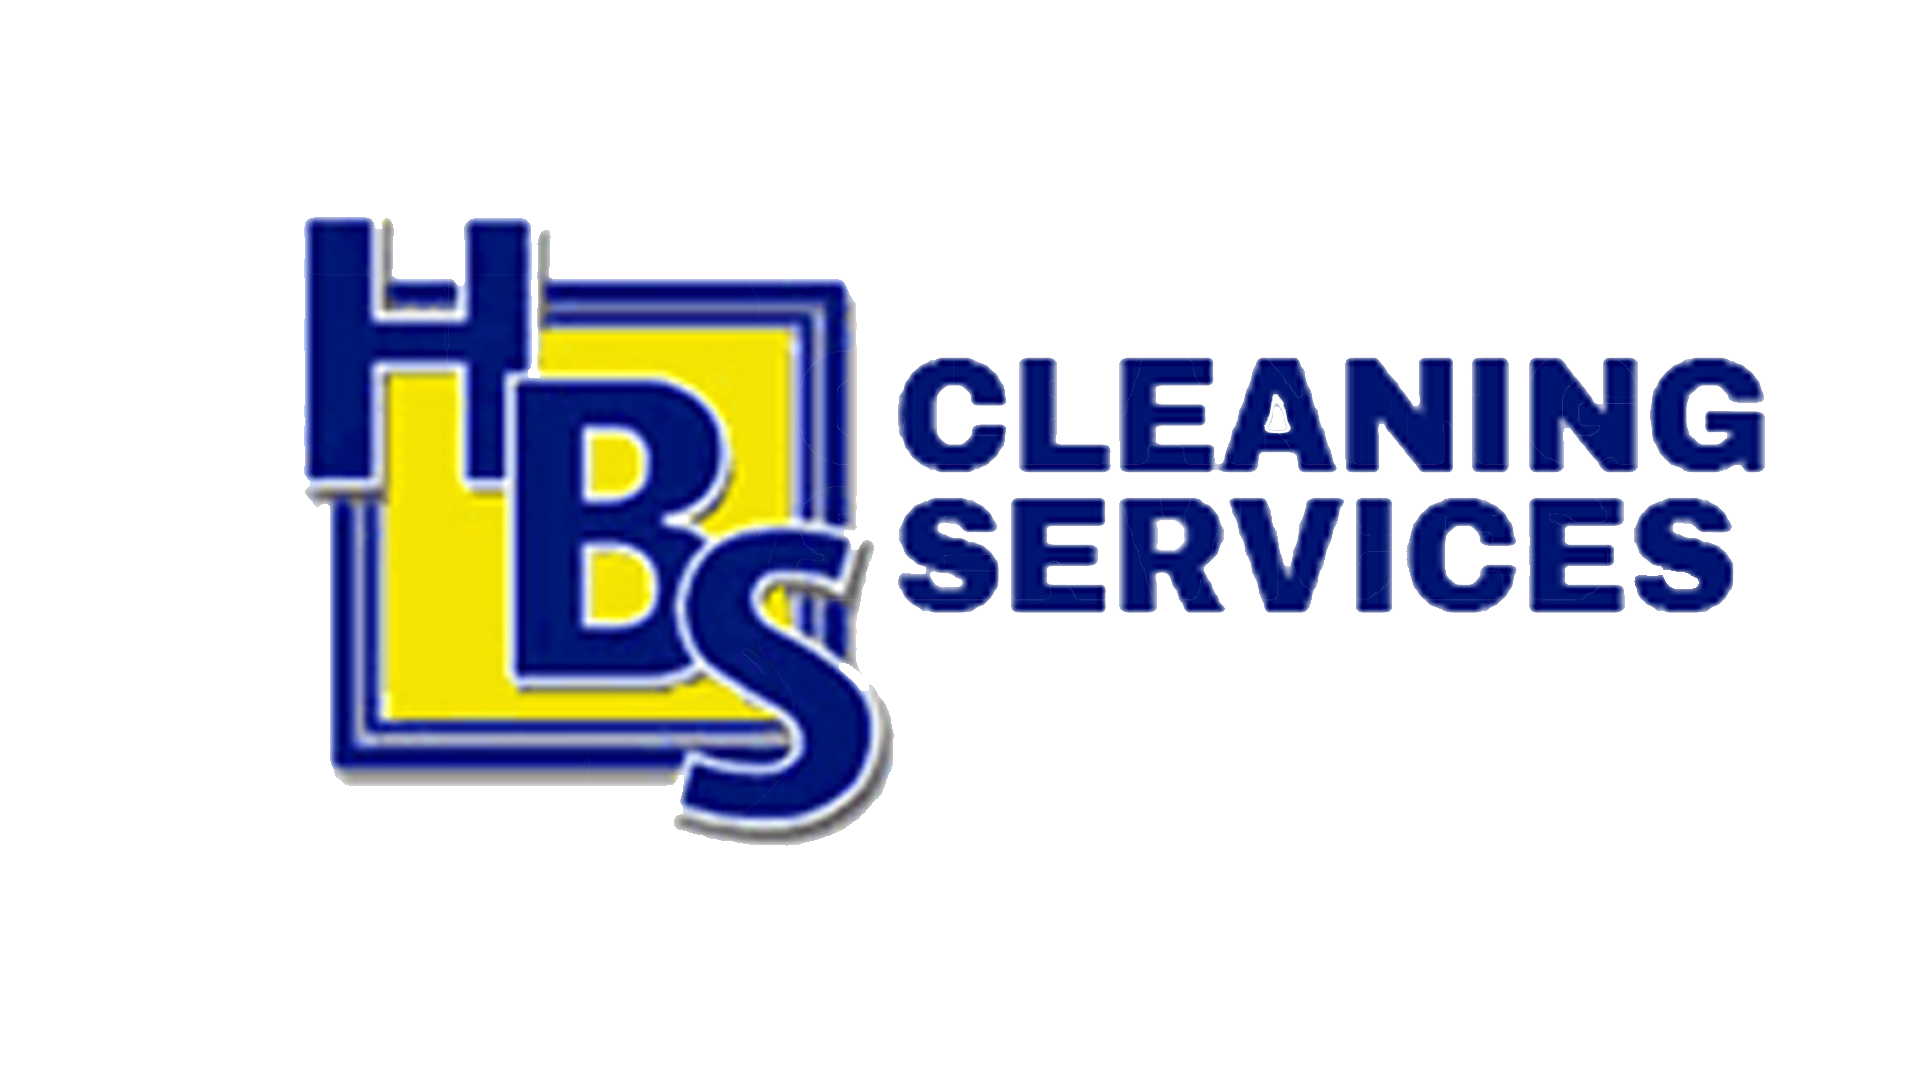 Hbs Cleaning Services The Professionals At Hbs Cleaning